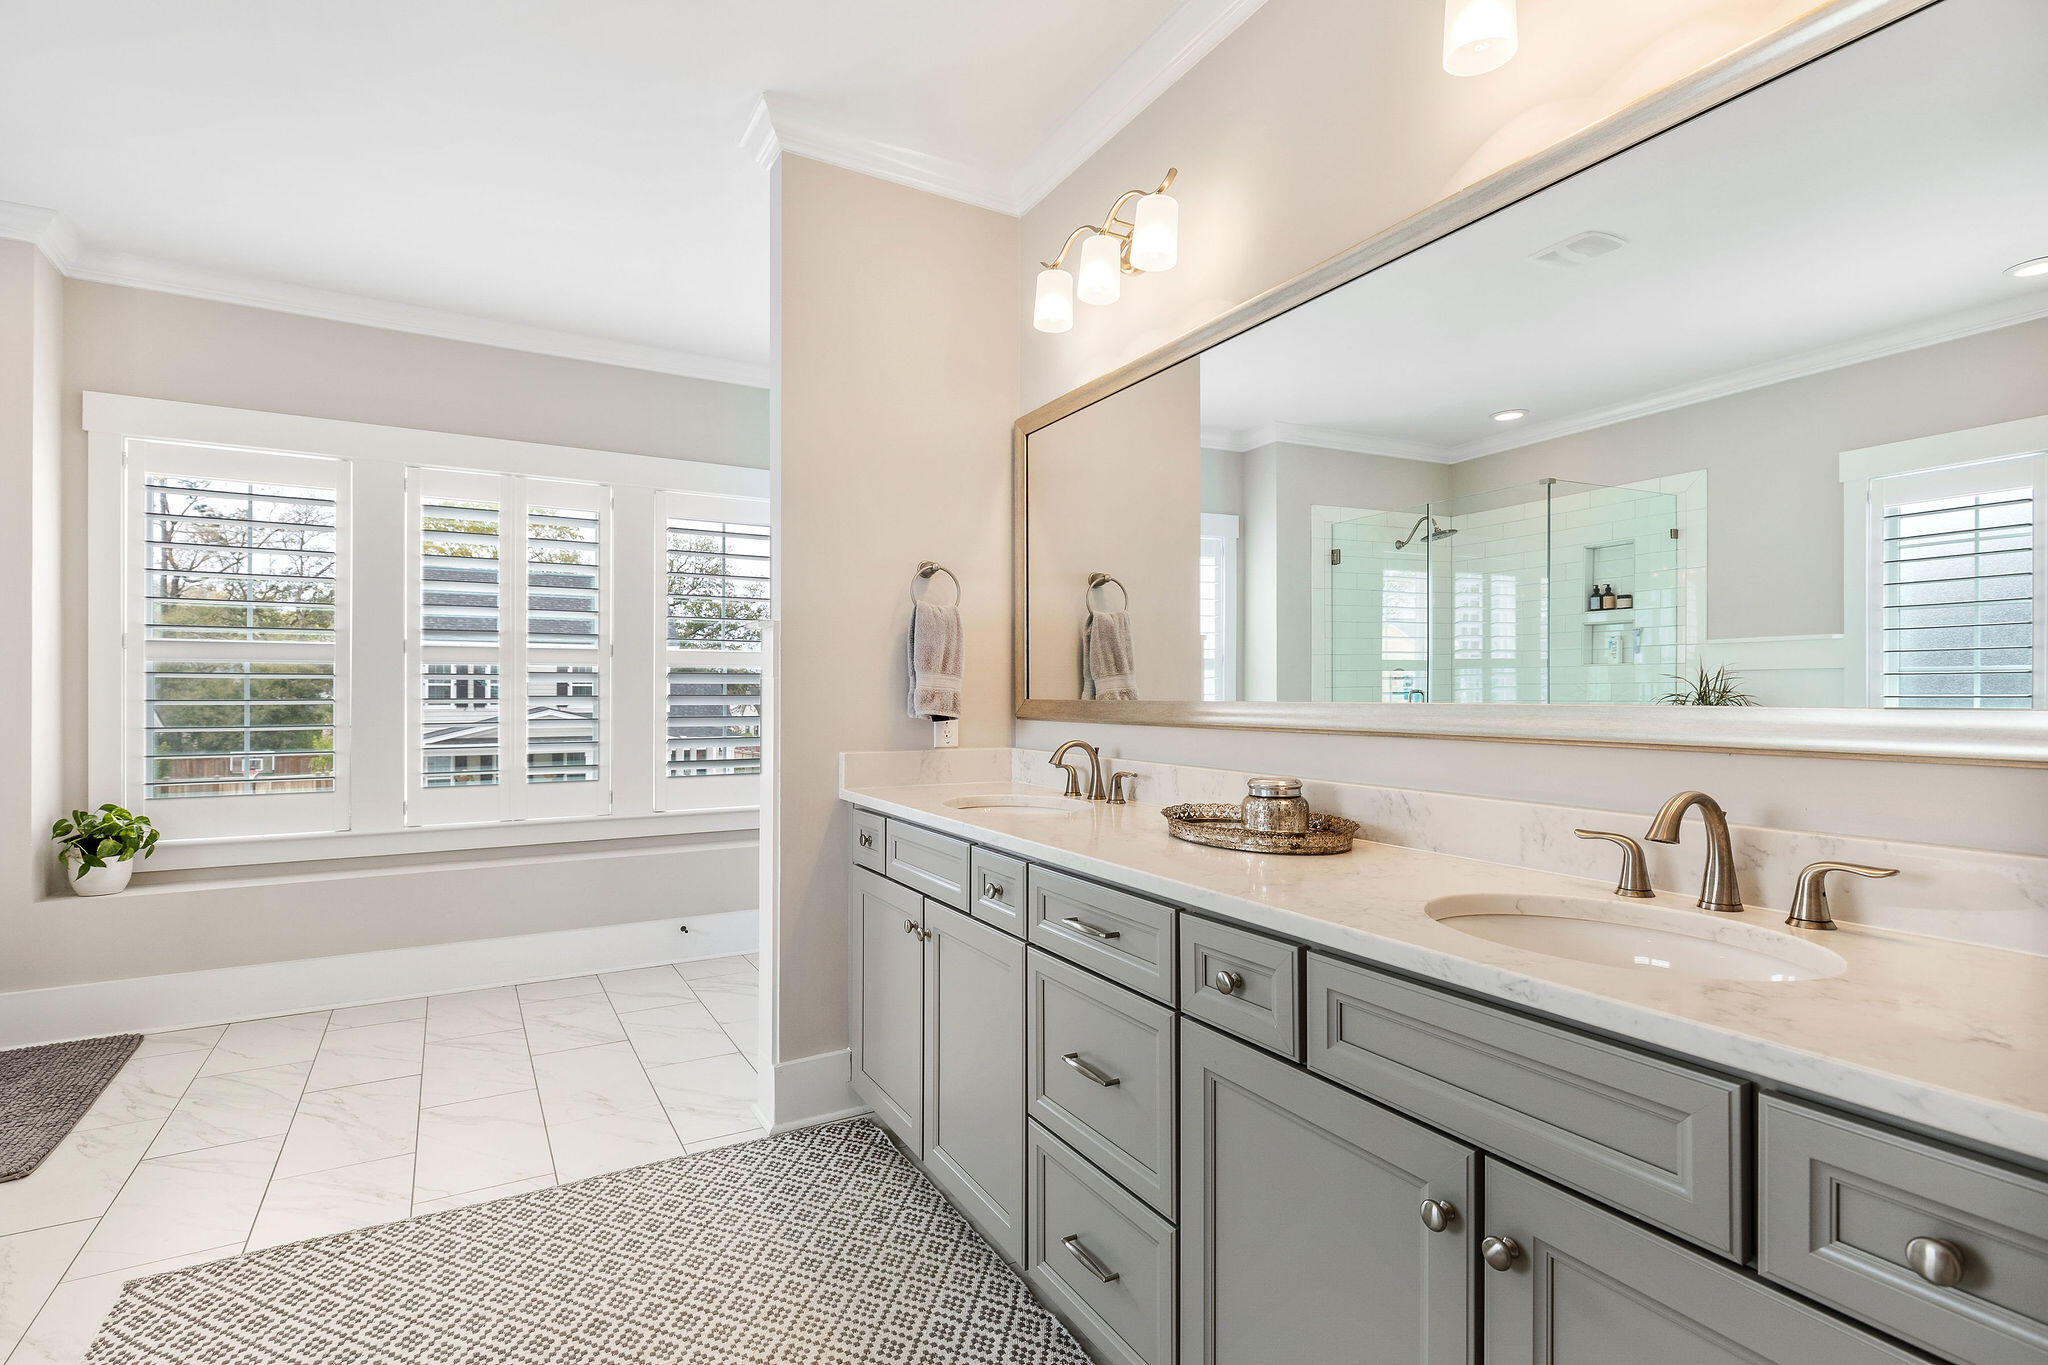 The Village at Stiles Point Homes For Sale - 848 Shutes Folly, Charleston, SC - 41